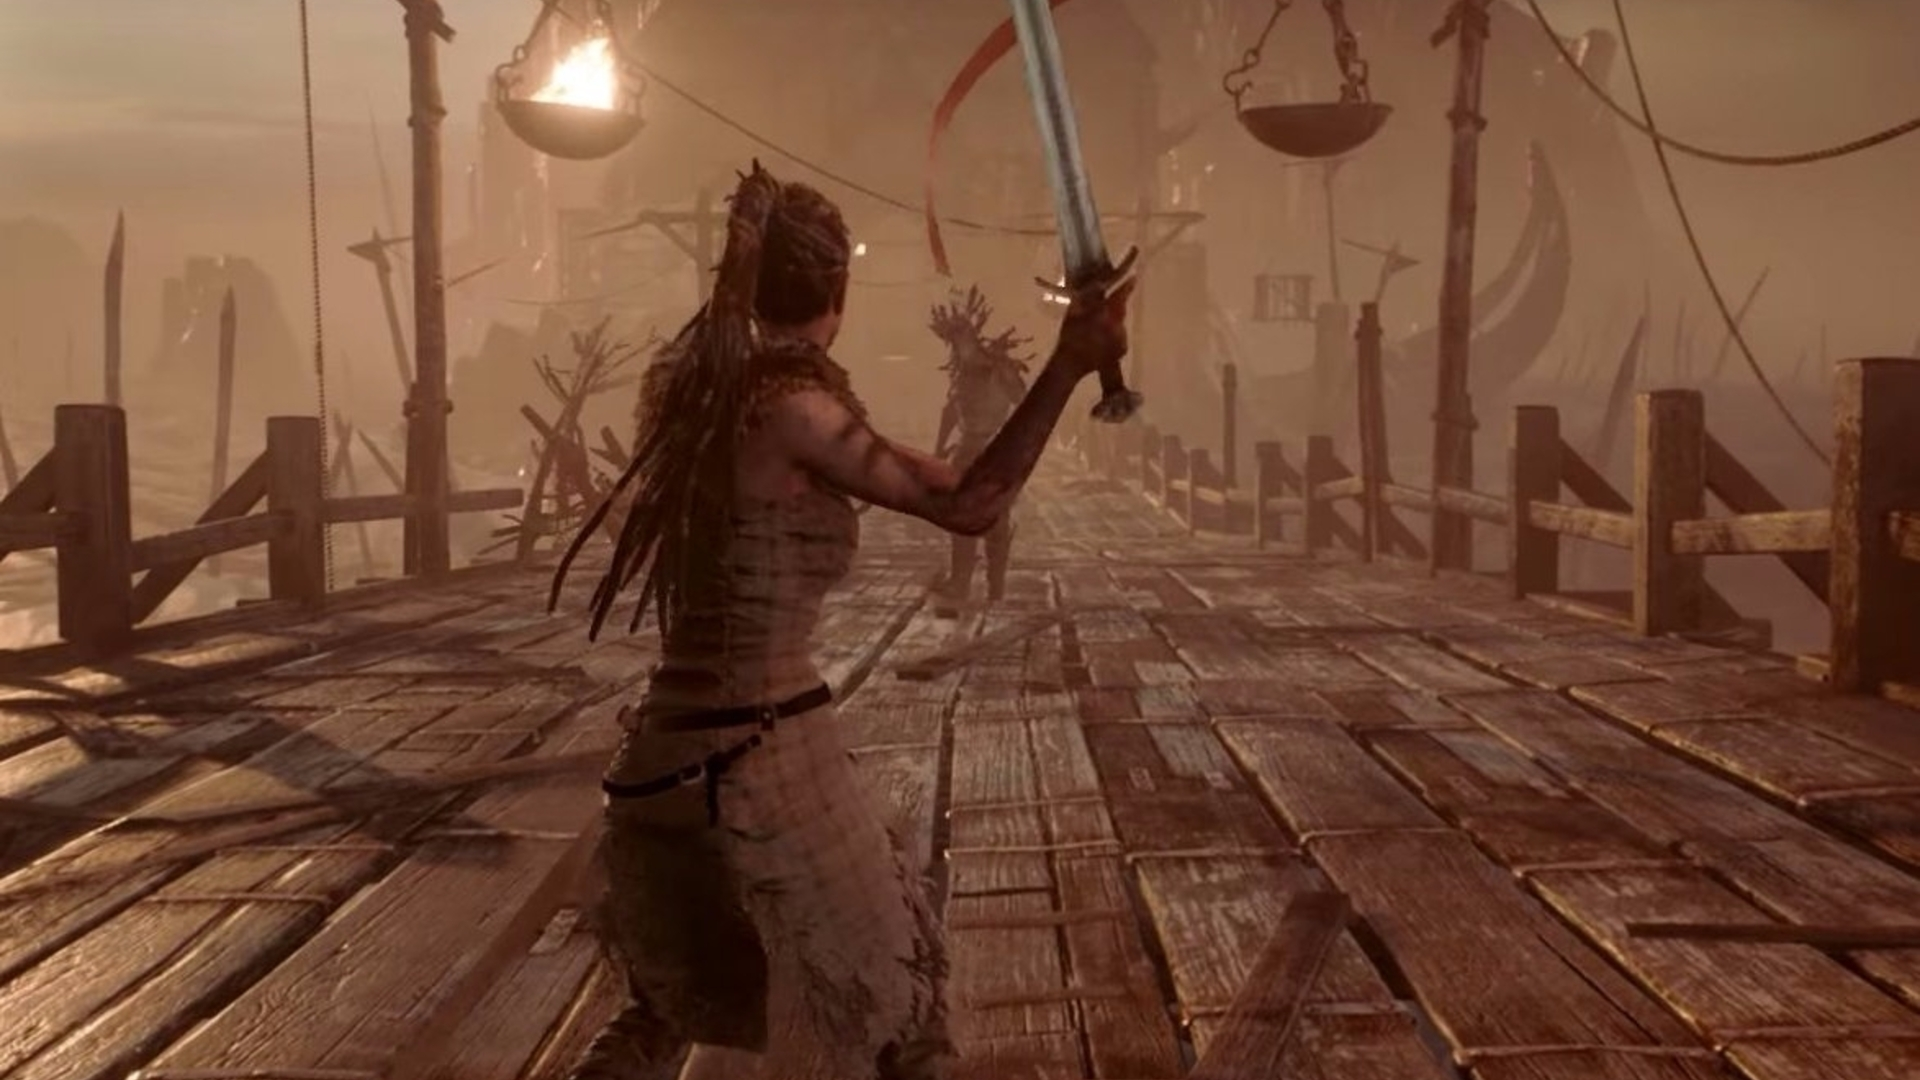 Hellblade combat video looks smooth as hell